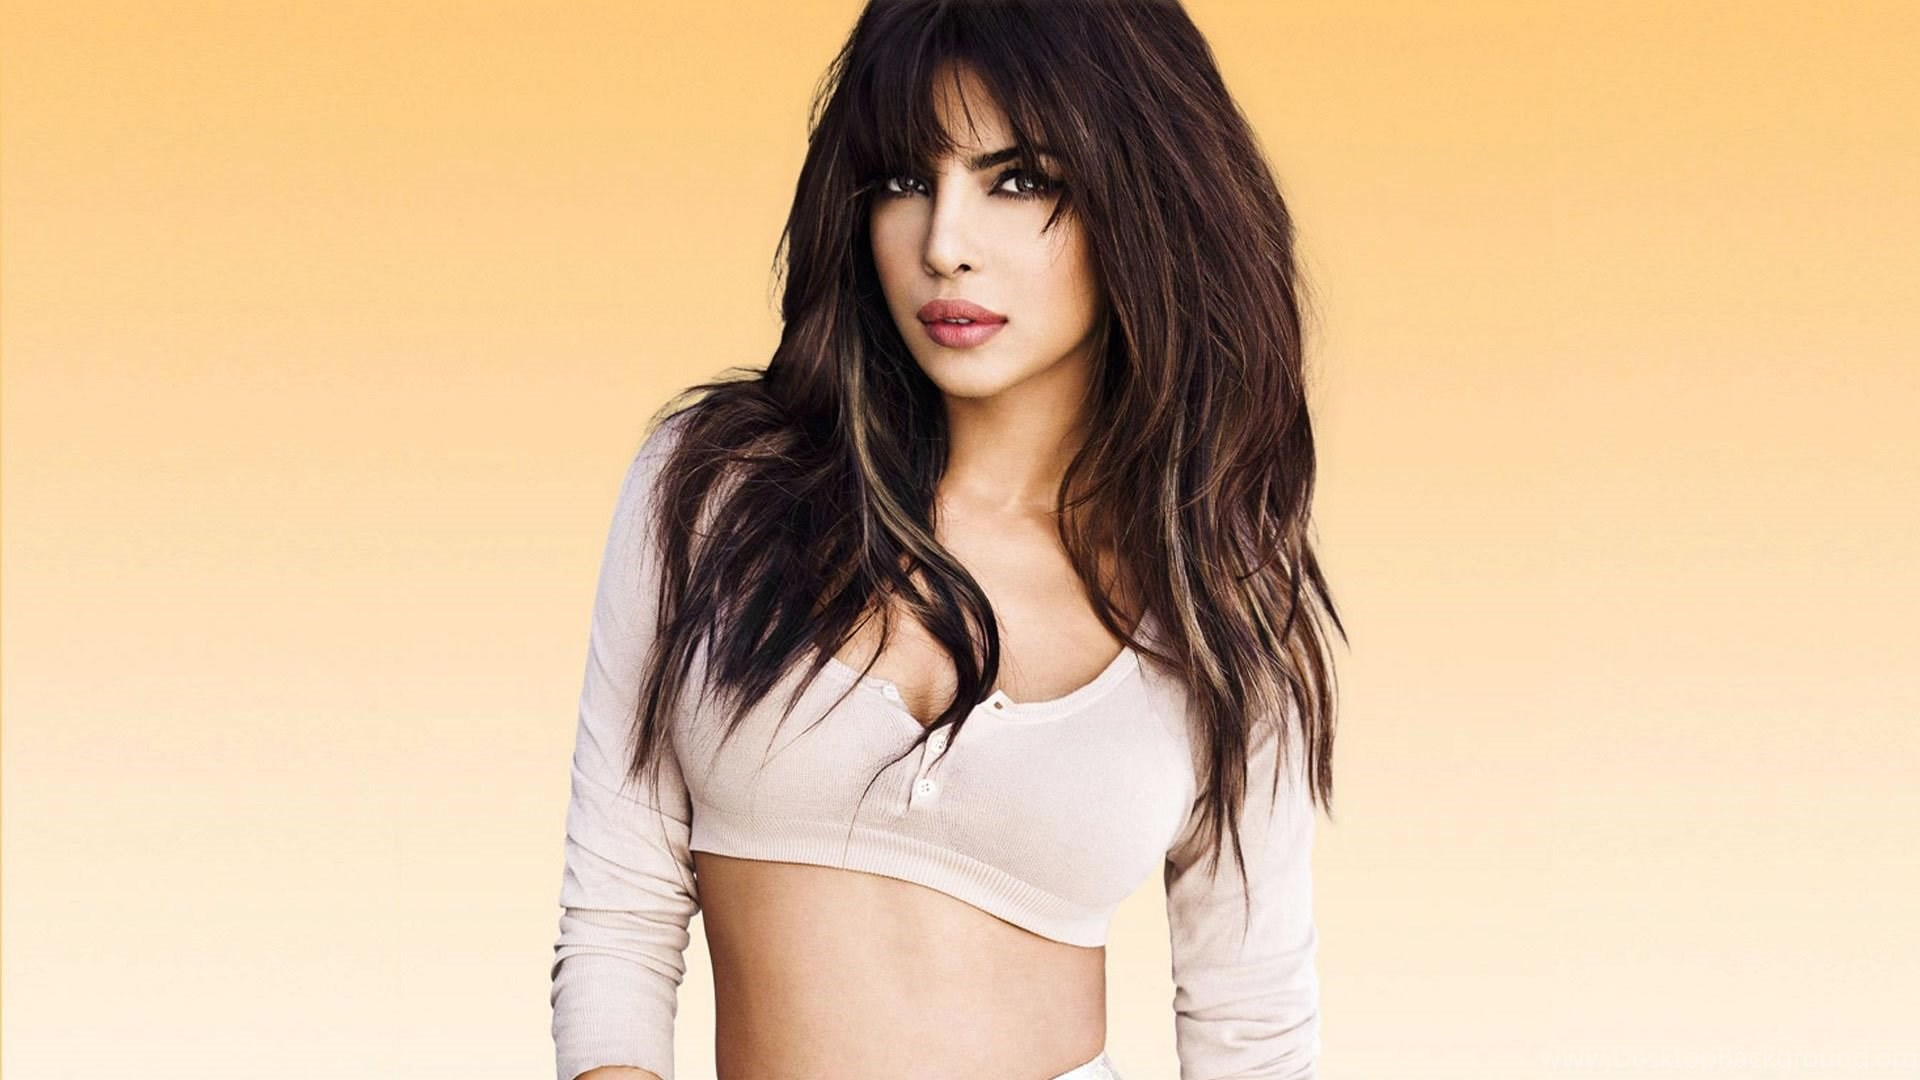 latest hot collections of priyanka chopra hd hot wallpapers for free